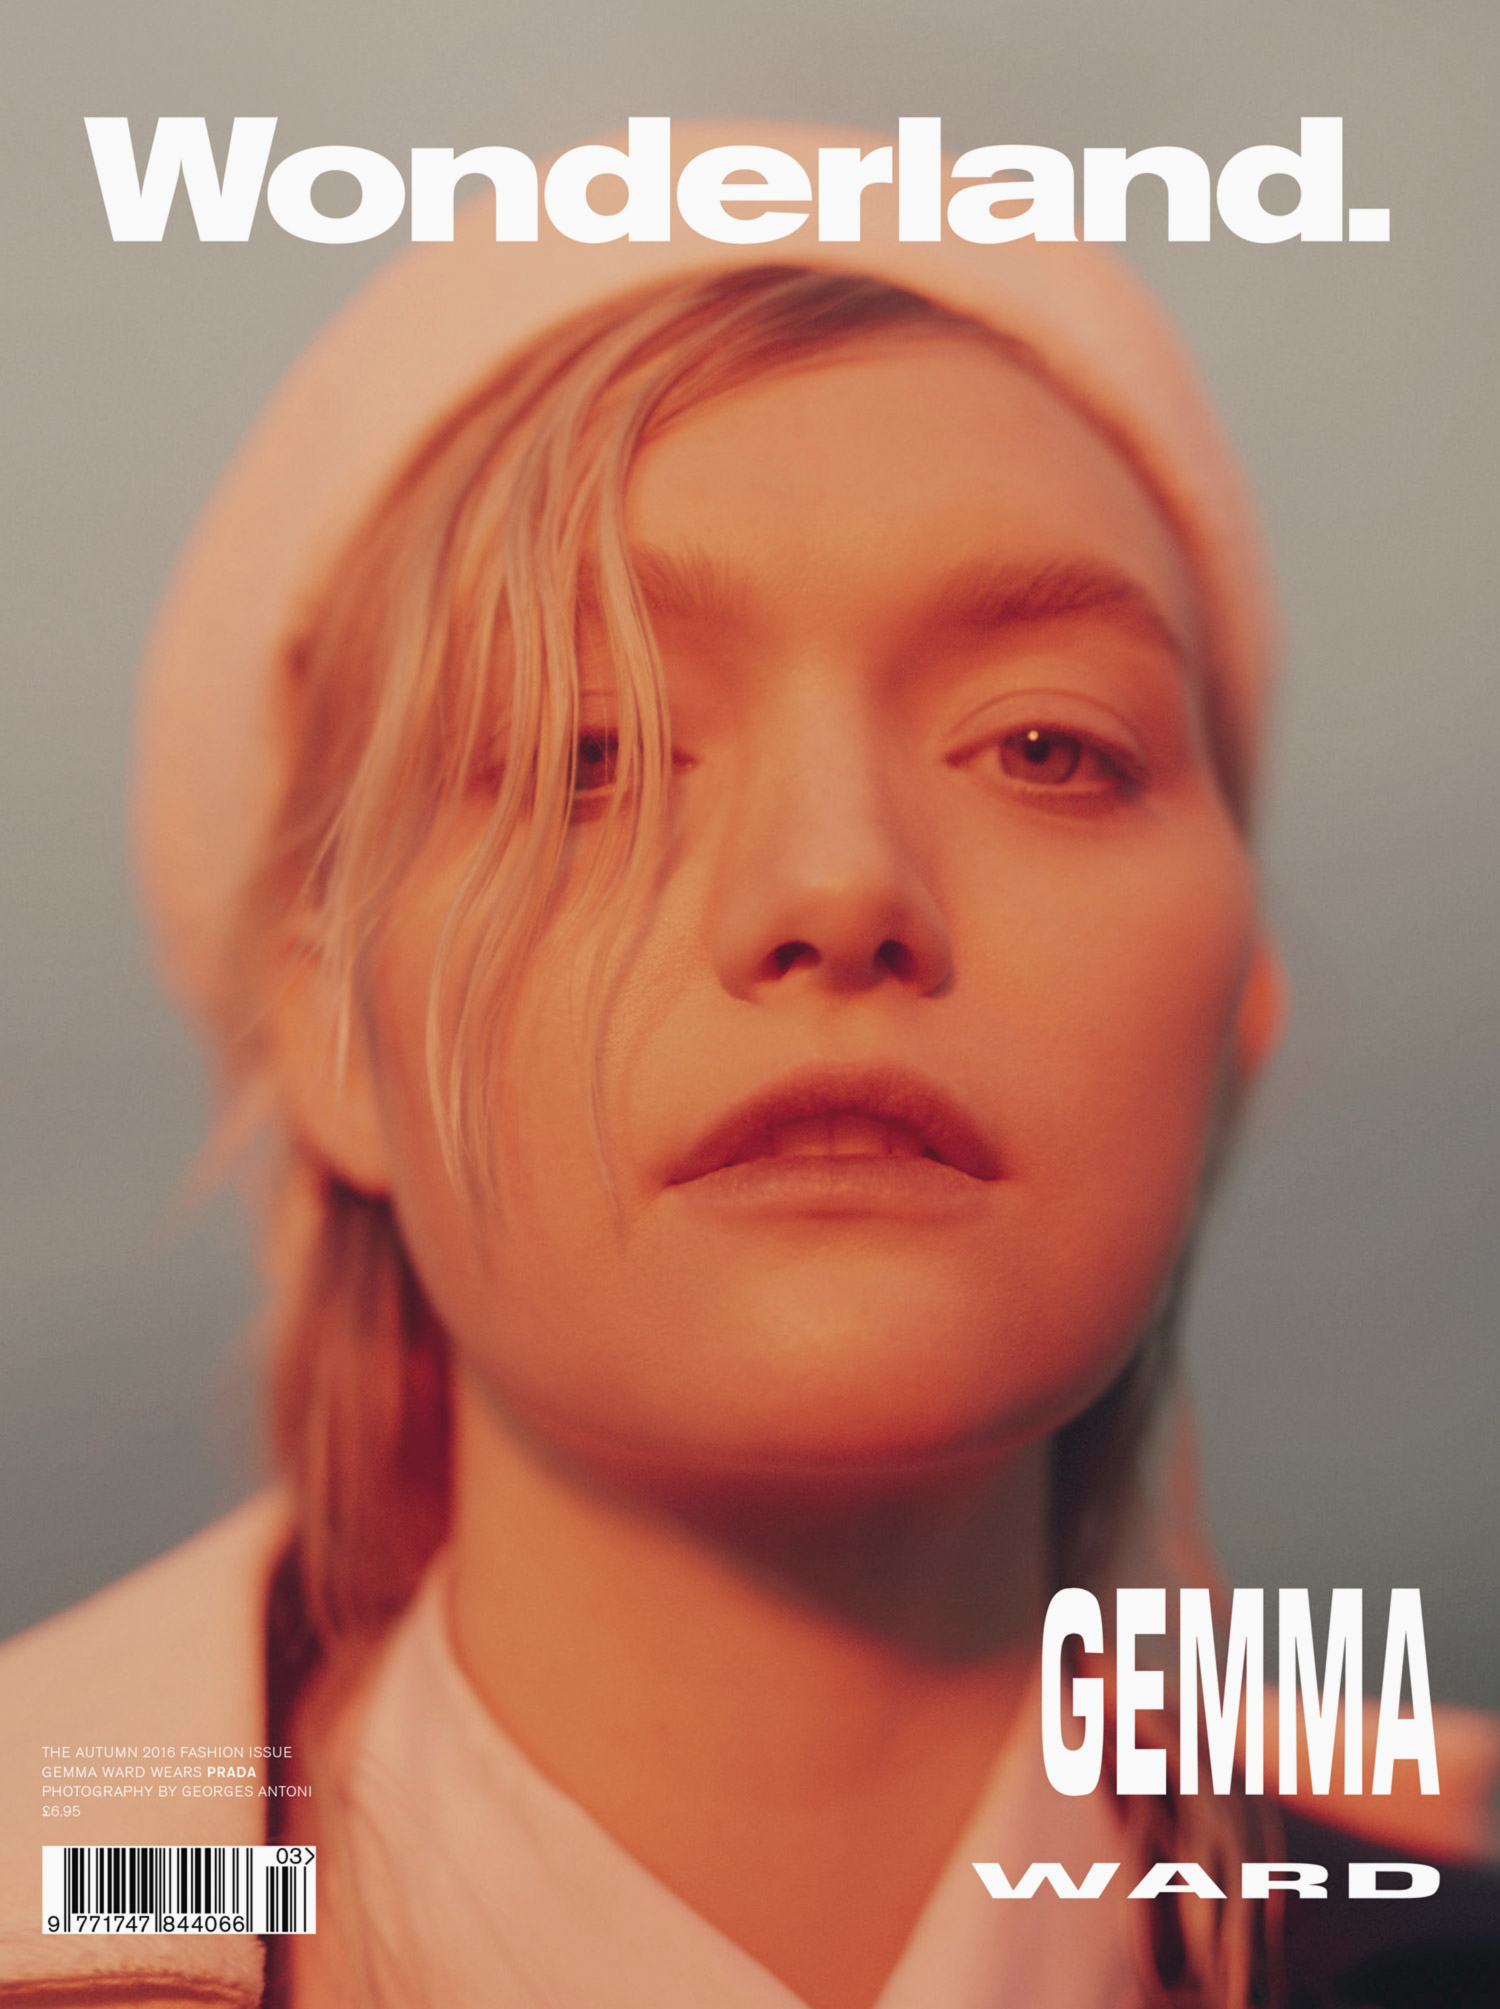 Gemma-Wonderland-Cover-Option-Original.jpg